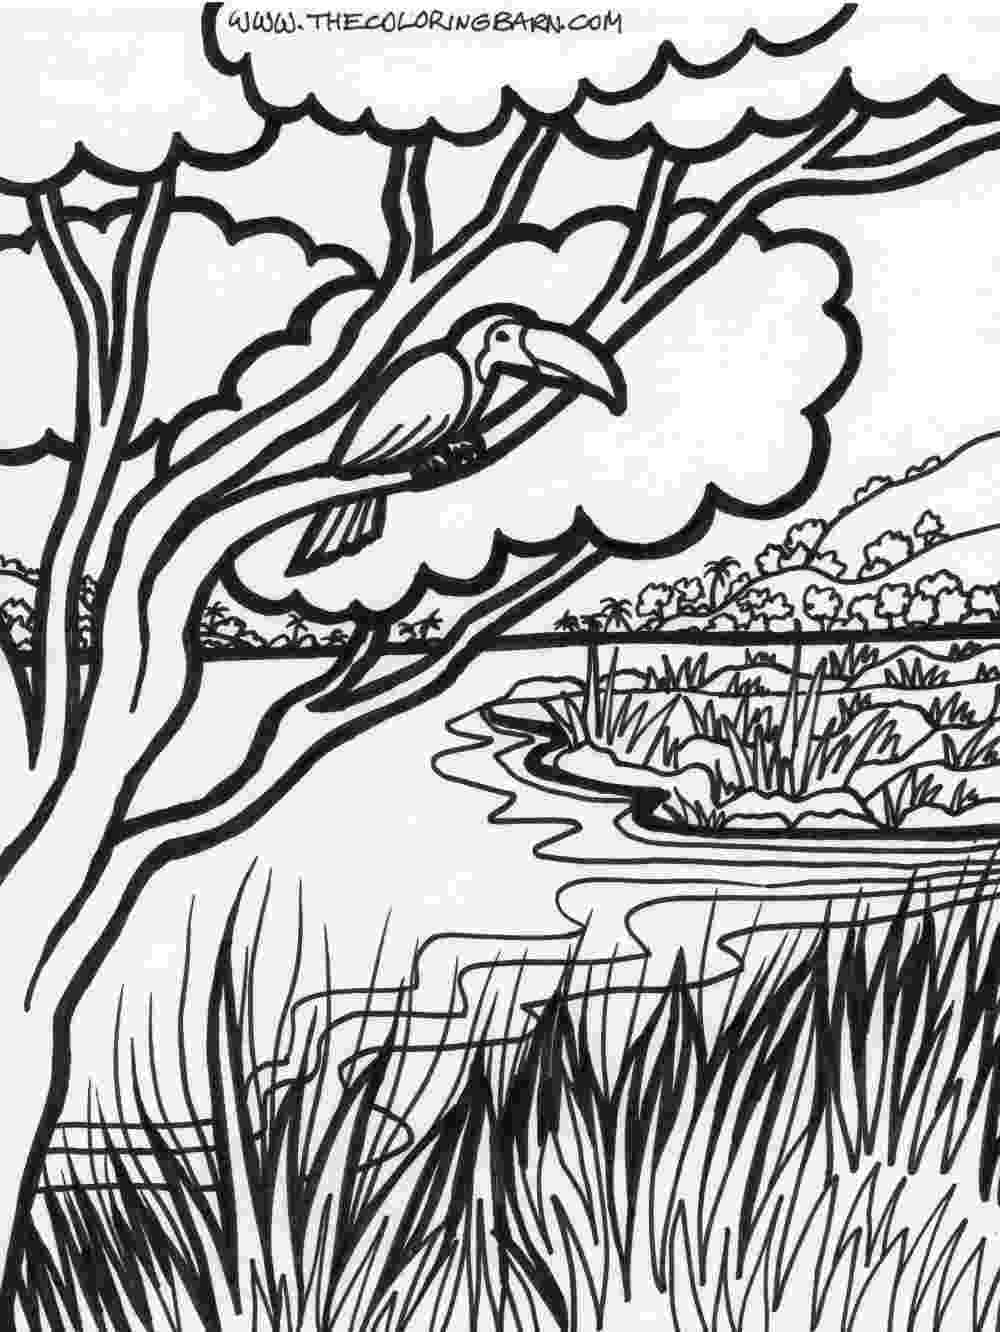 rainforest coloring pages monkey hanging on snake rainforest coloring page pages rainforest coloring